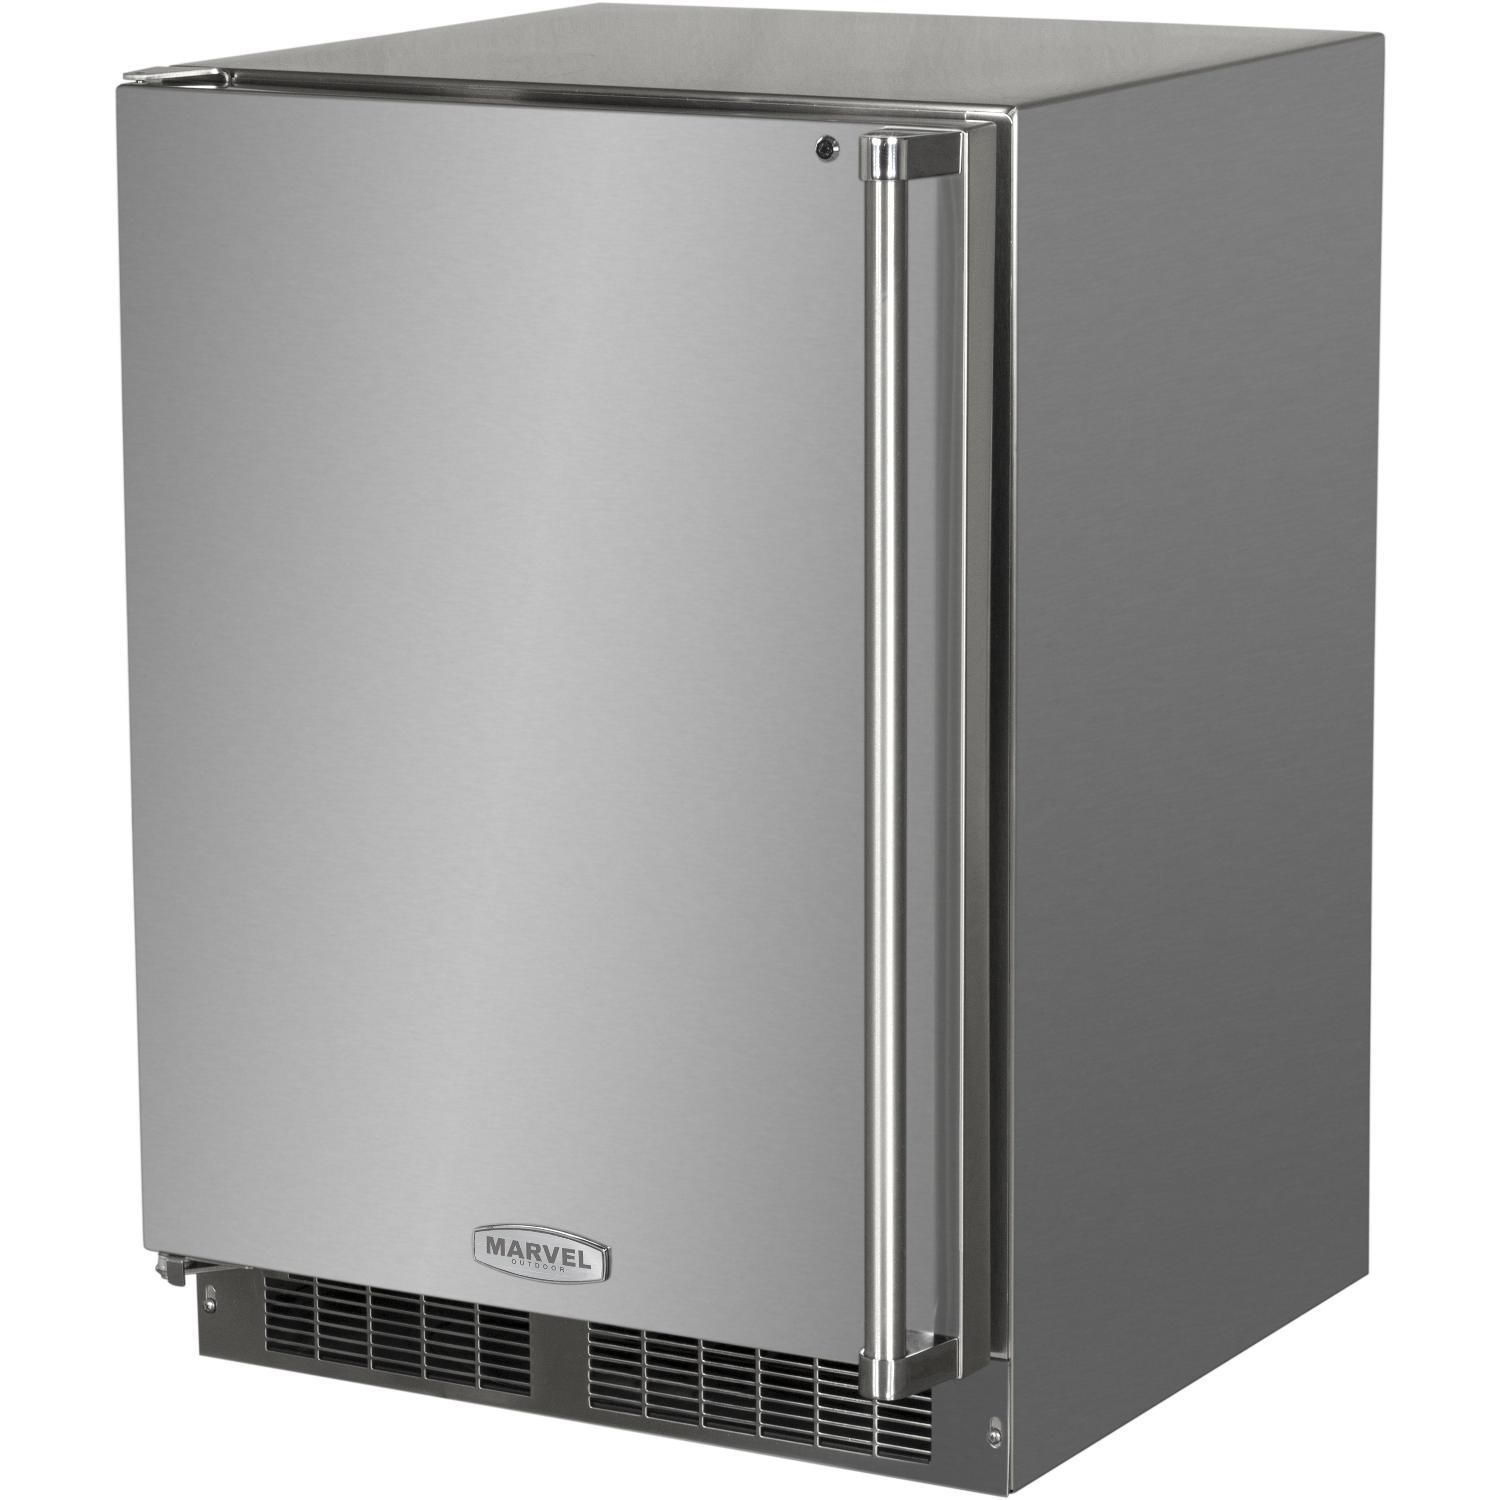 Marvel 24 Inch 4 9 Cu Ft Left Hinge Outdoor Rated Compact Refrigerator Freezer With Ice Maker Mo24rfs2ls Outdoor Refrigerator Upright Freezer Stainless Steel Refrigerator